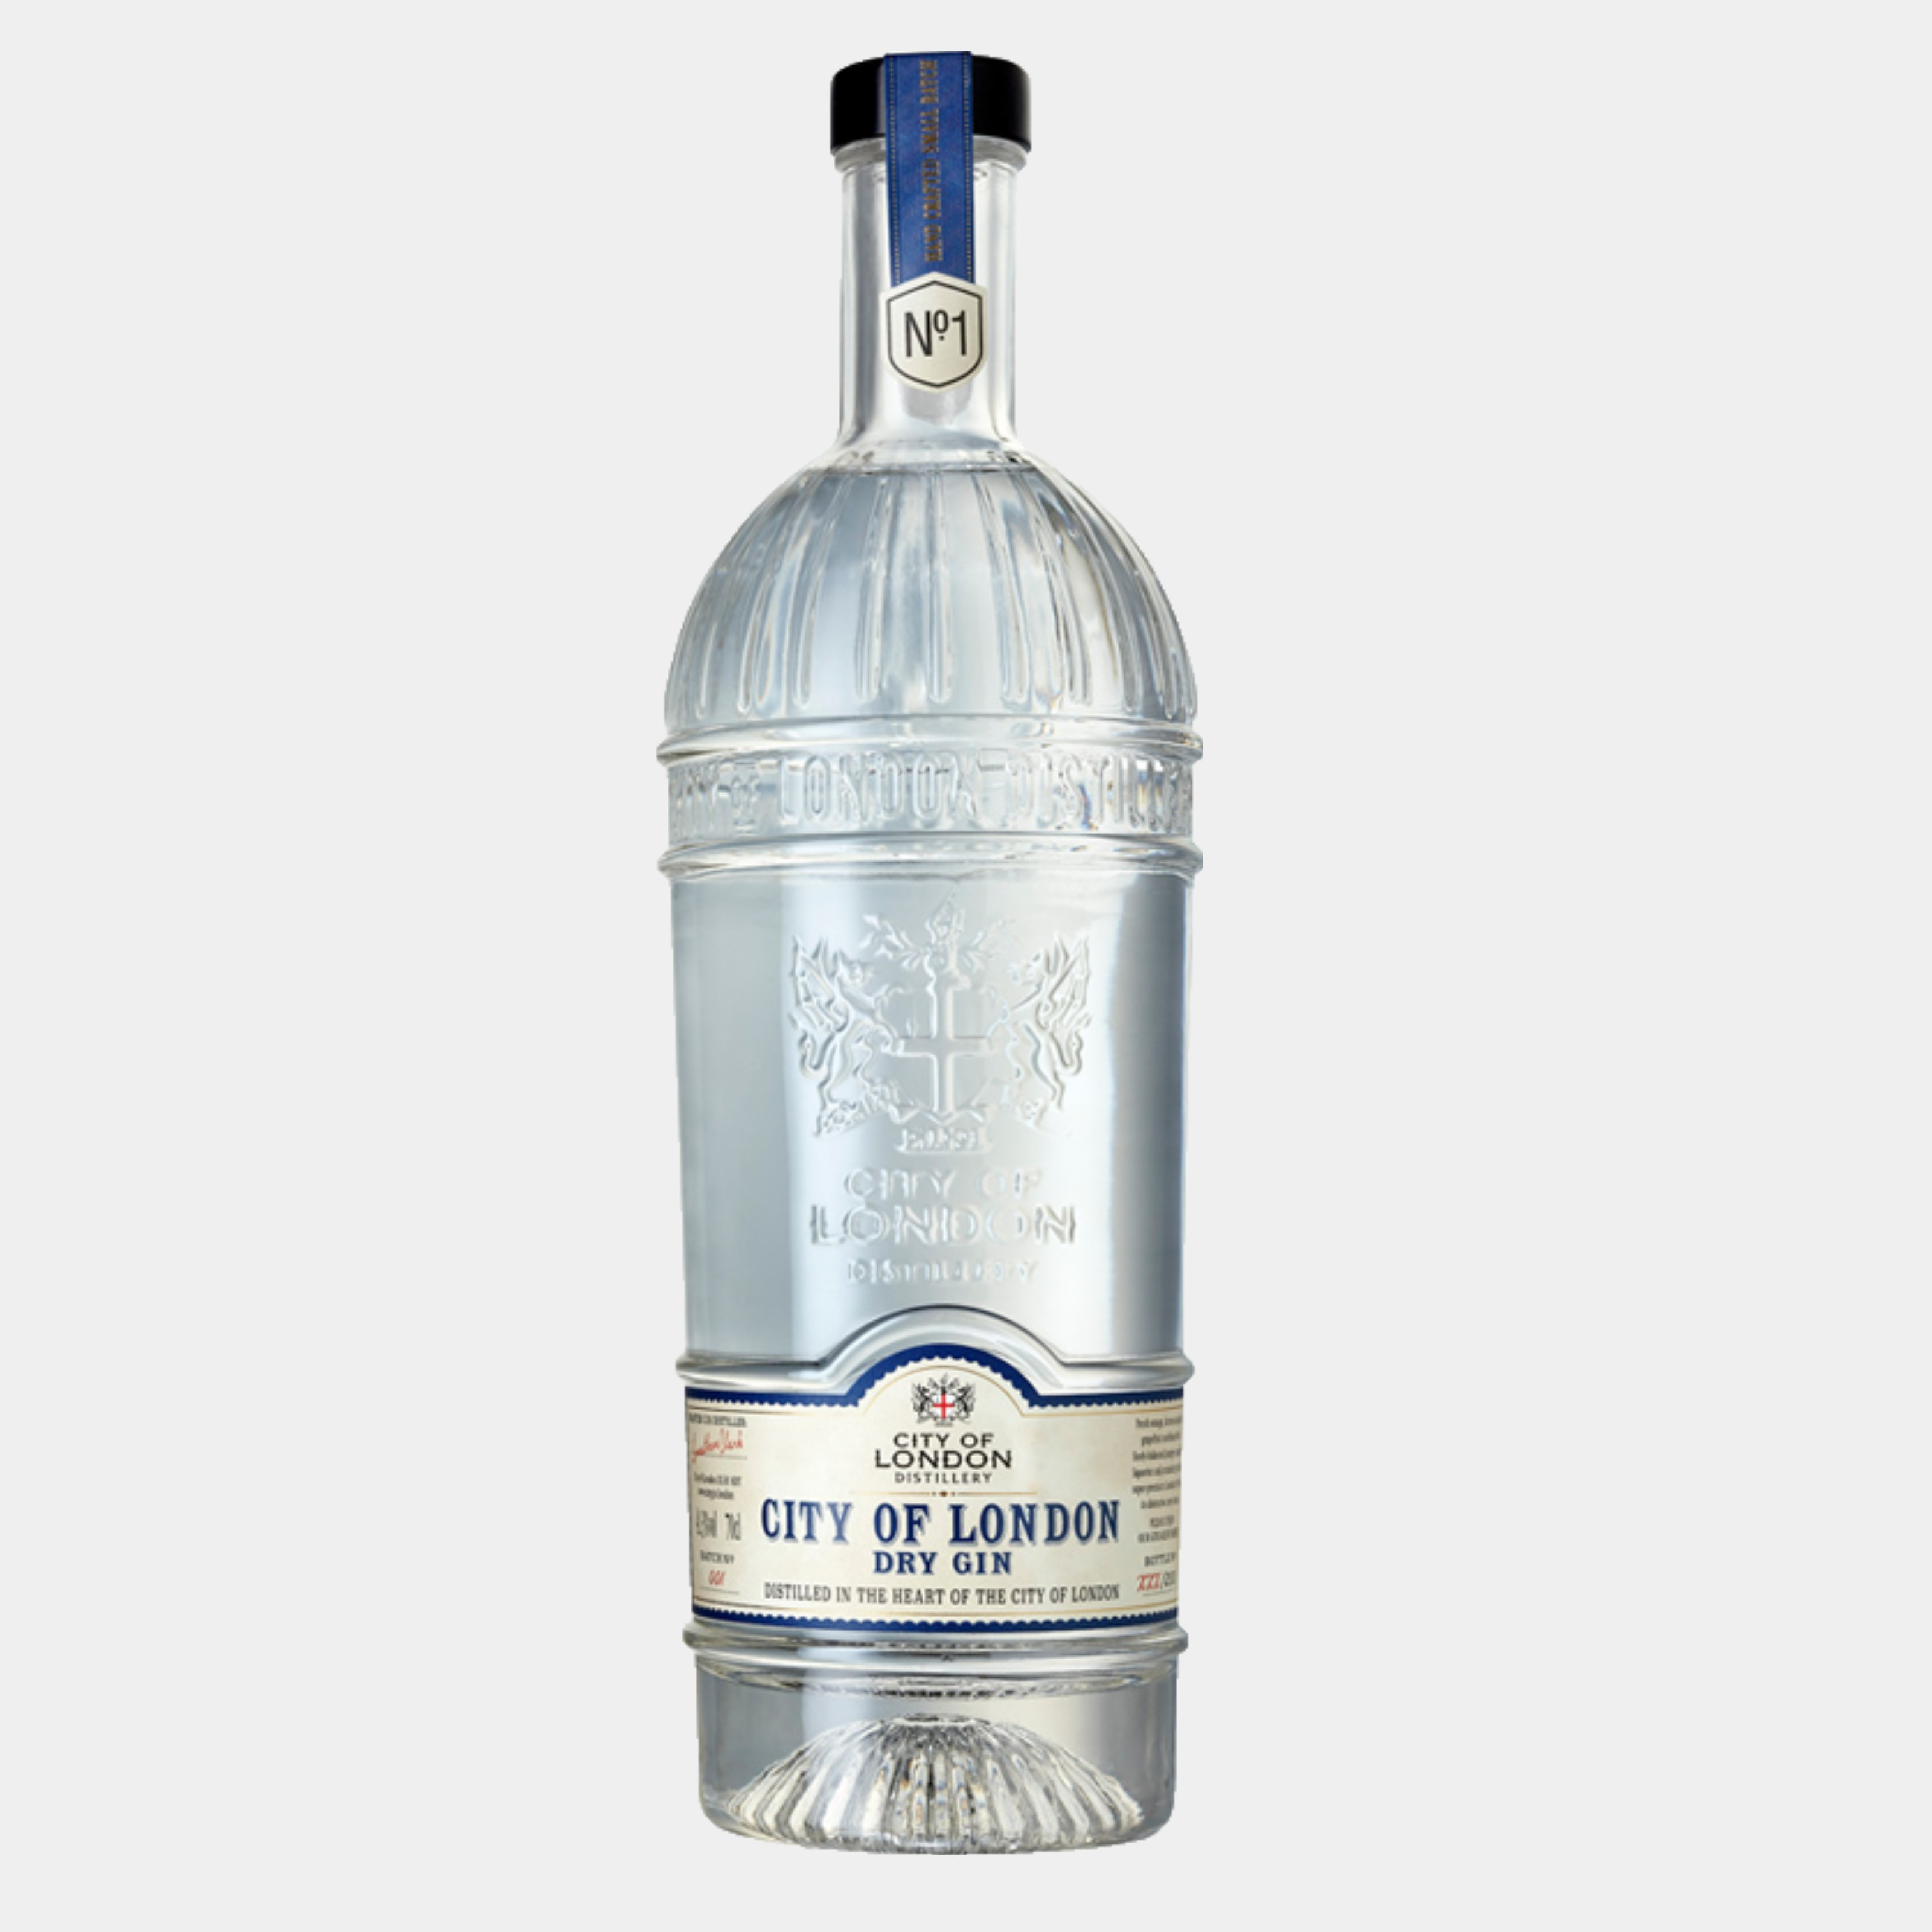 City of London Dry Gin 0.7L 40% Alk.